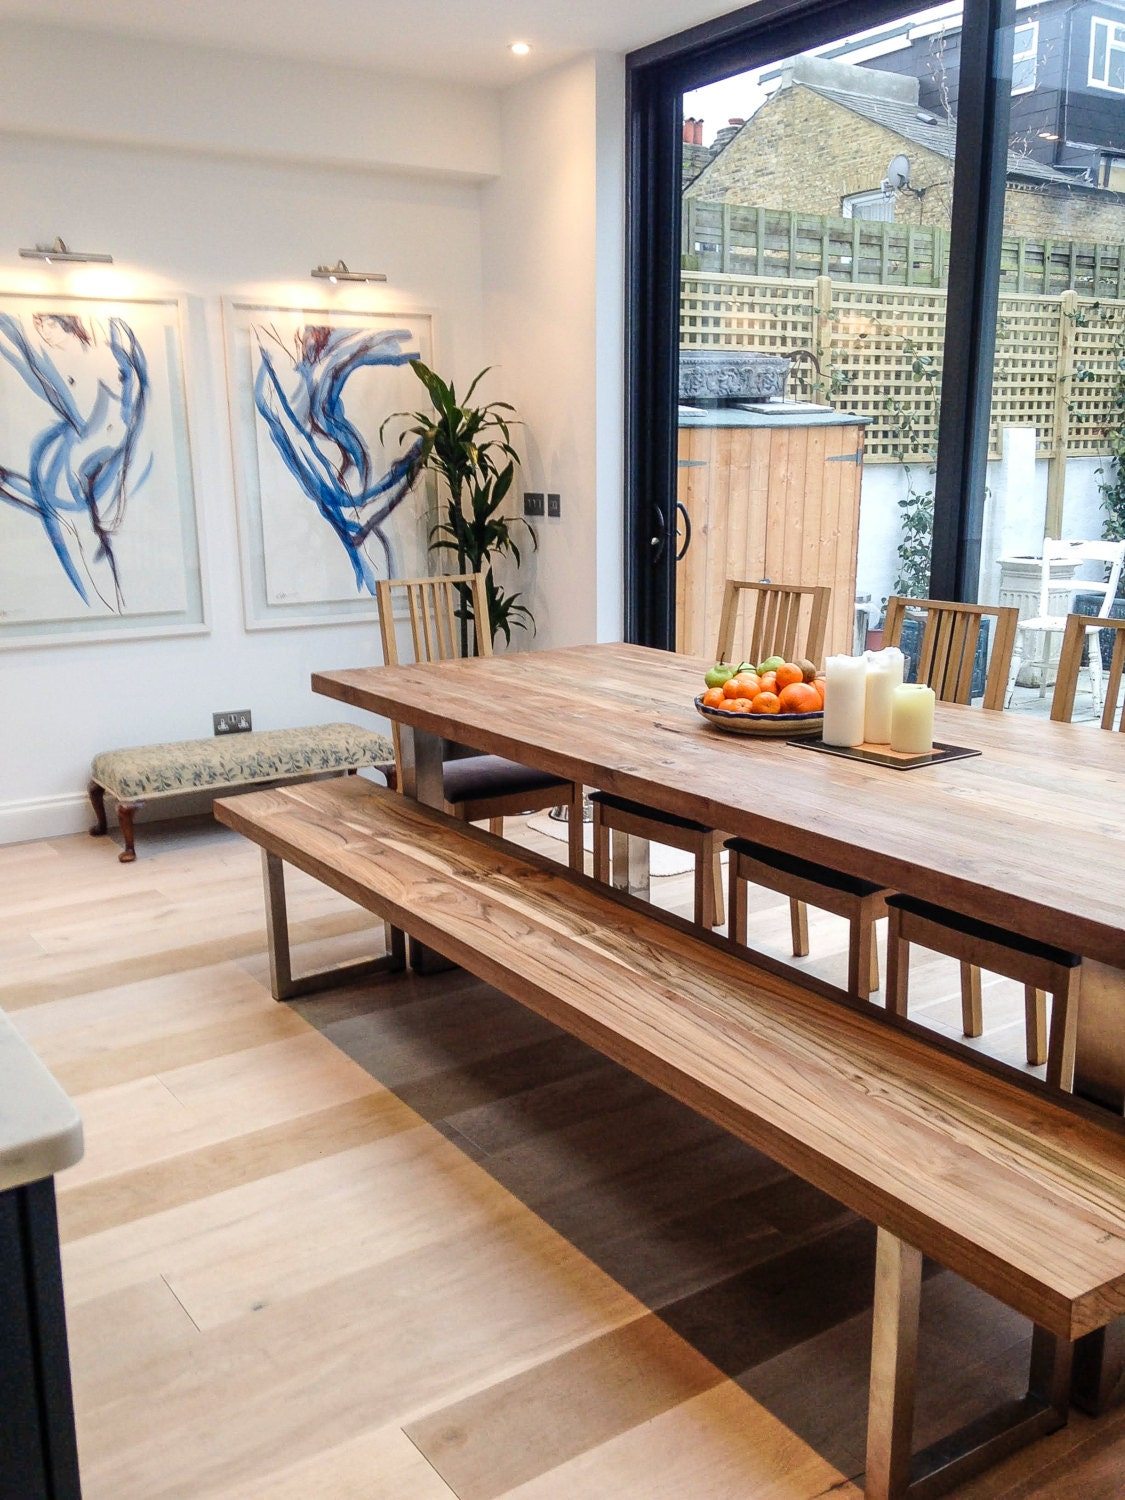 Waja Industrial Style Dining Table. Matching benches available as a set. Stunning ethical ecofriendly and free delivery!